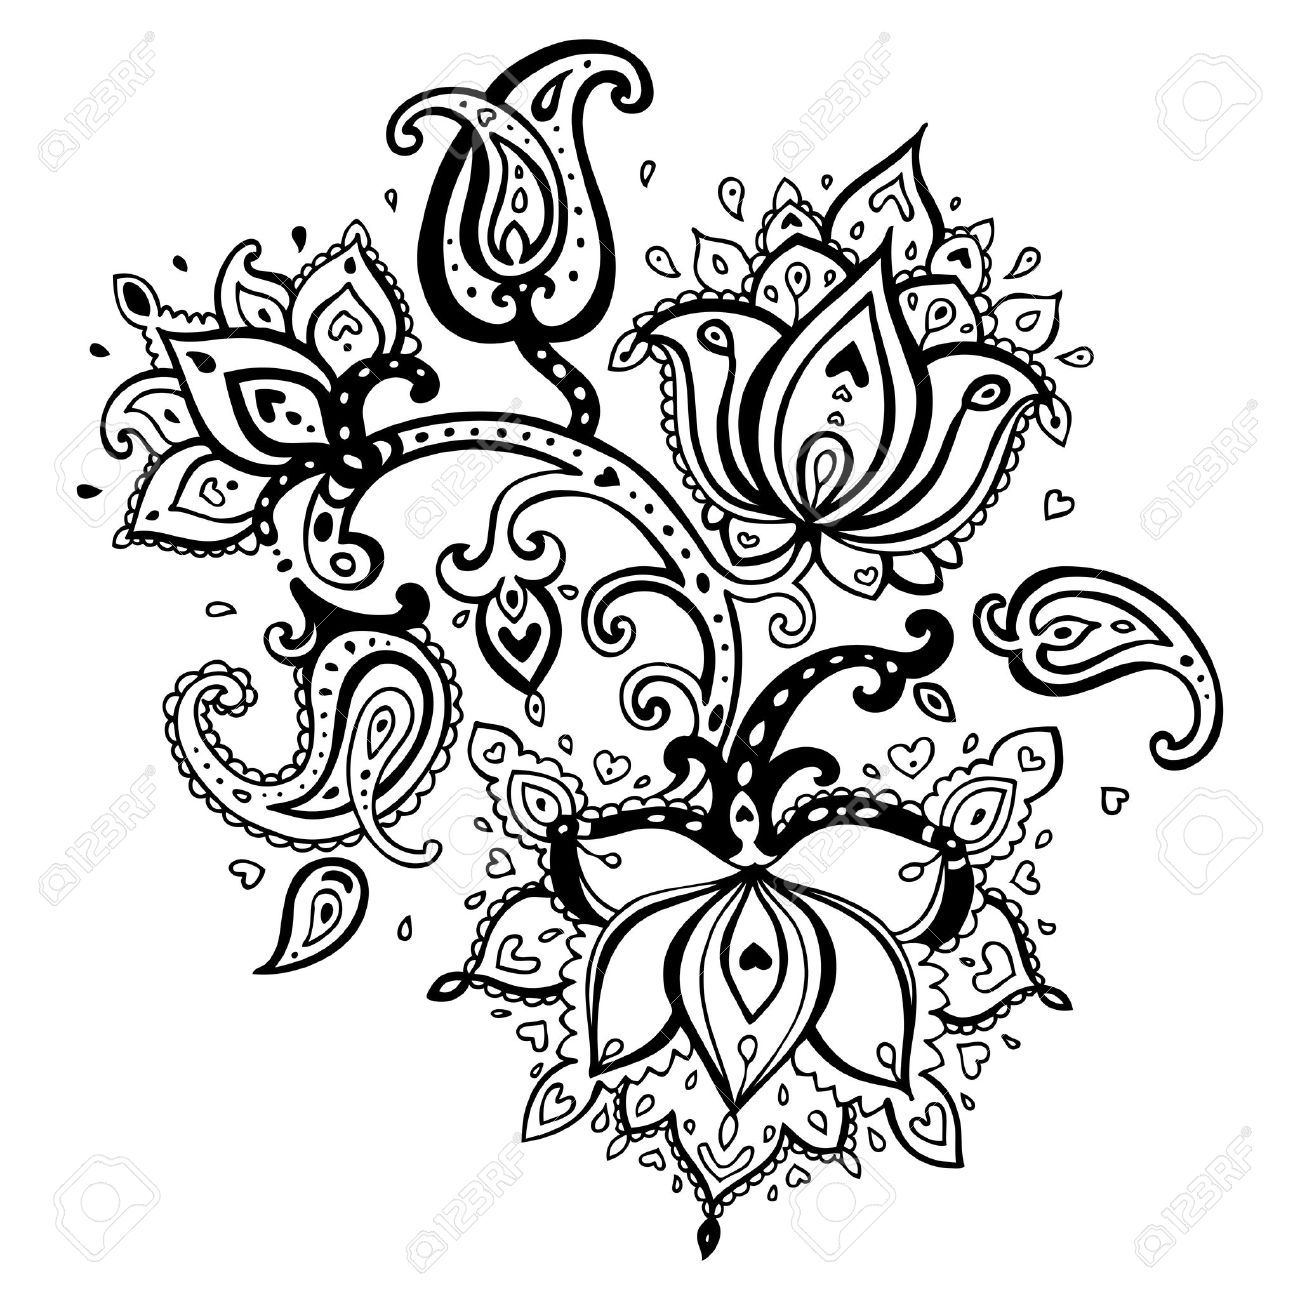 Ornament lotosu szukaj w google tattoo pinterest ornament paisley ornament lotus flower vector illustration isolated royalty free photos pictures images and stock photography izmirmasajfo Gallery